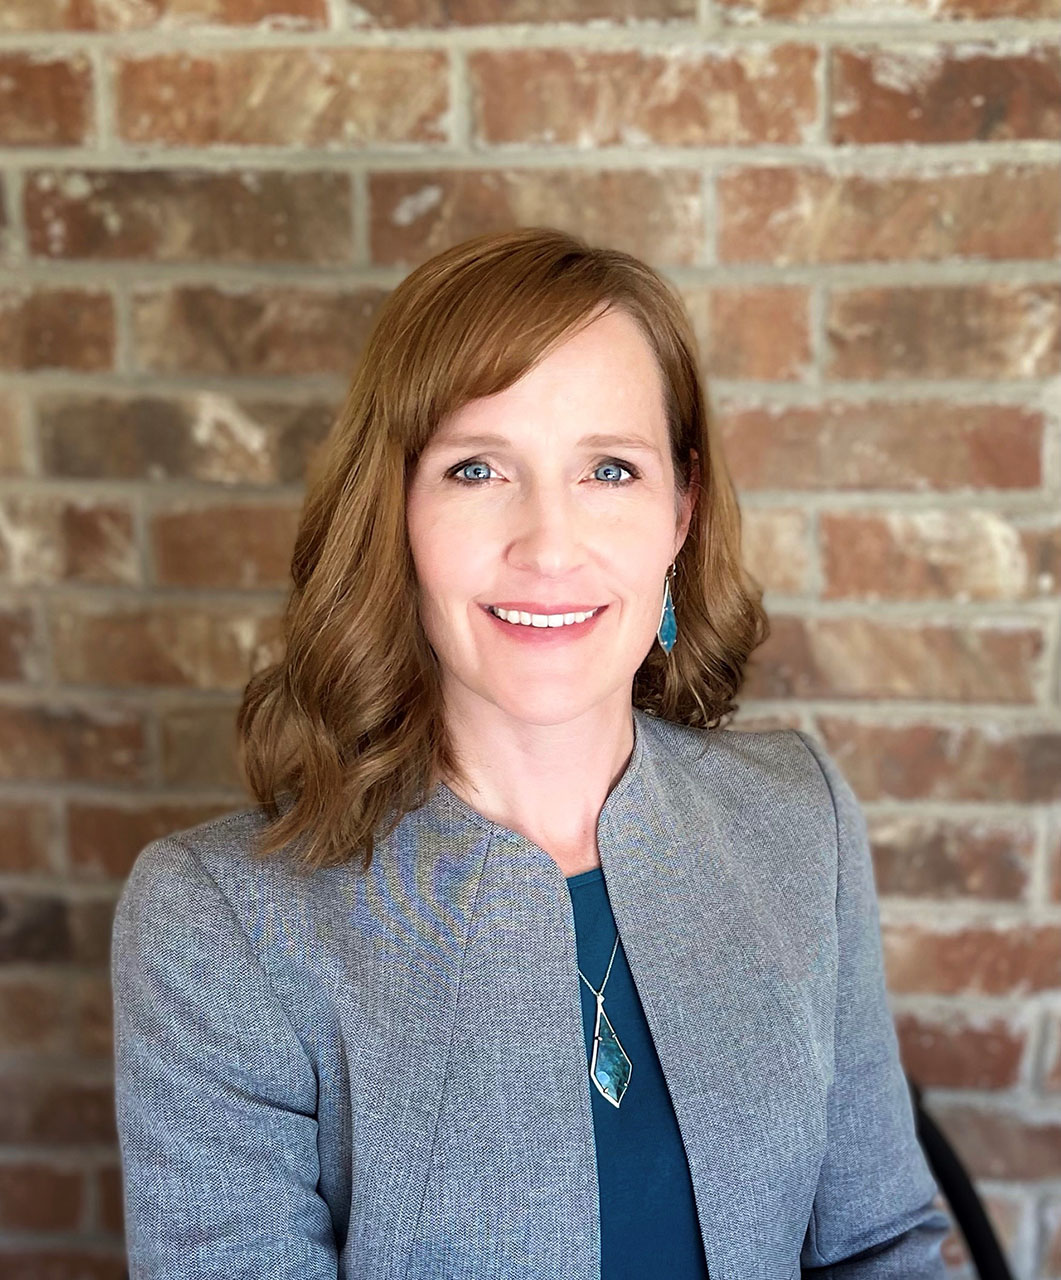 TRWD's Ickert selected to serve on Texas' first-ever flood plan committee